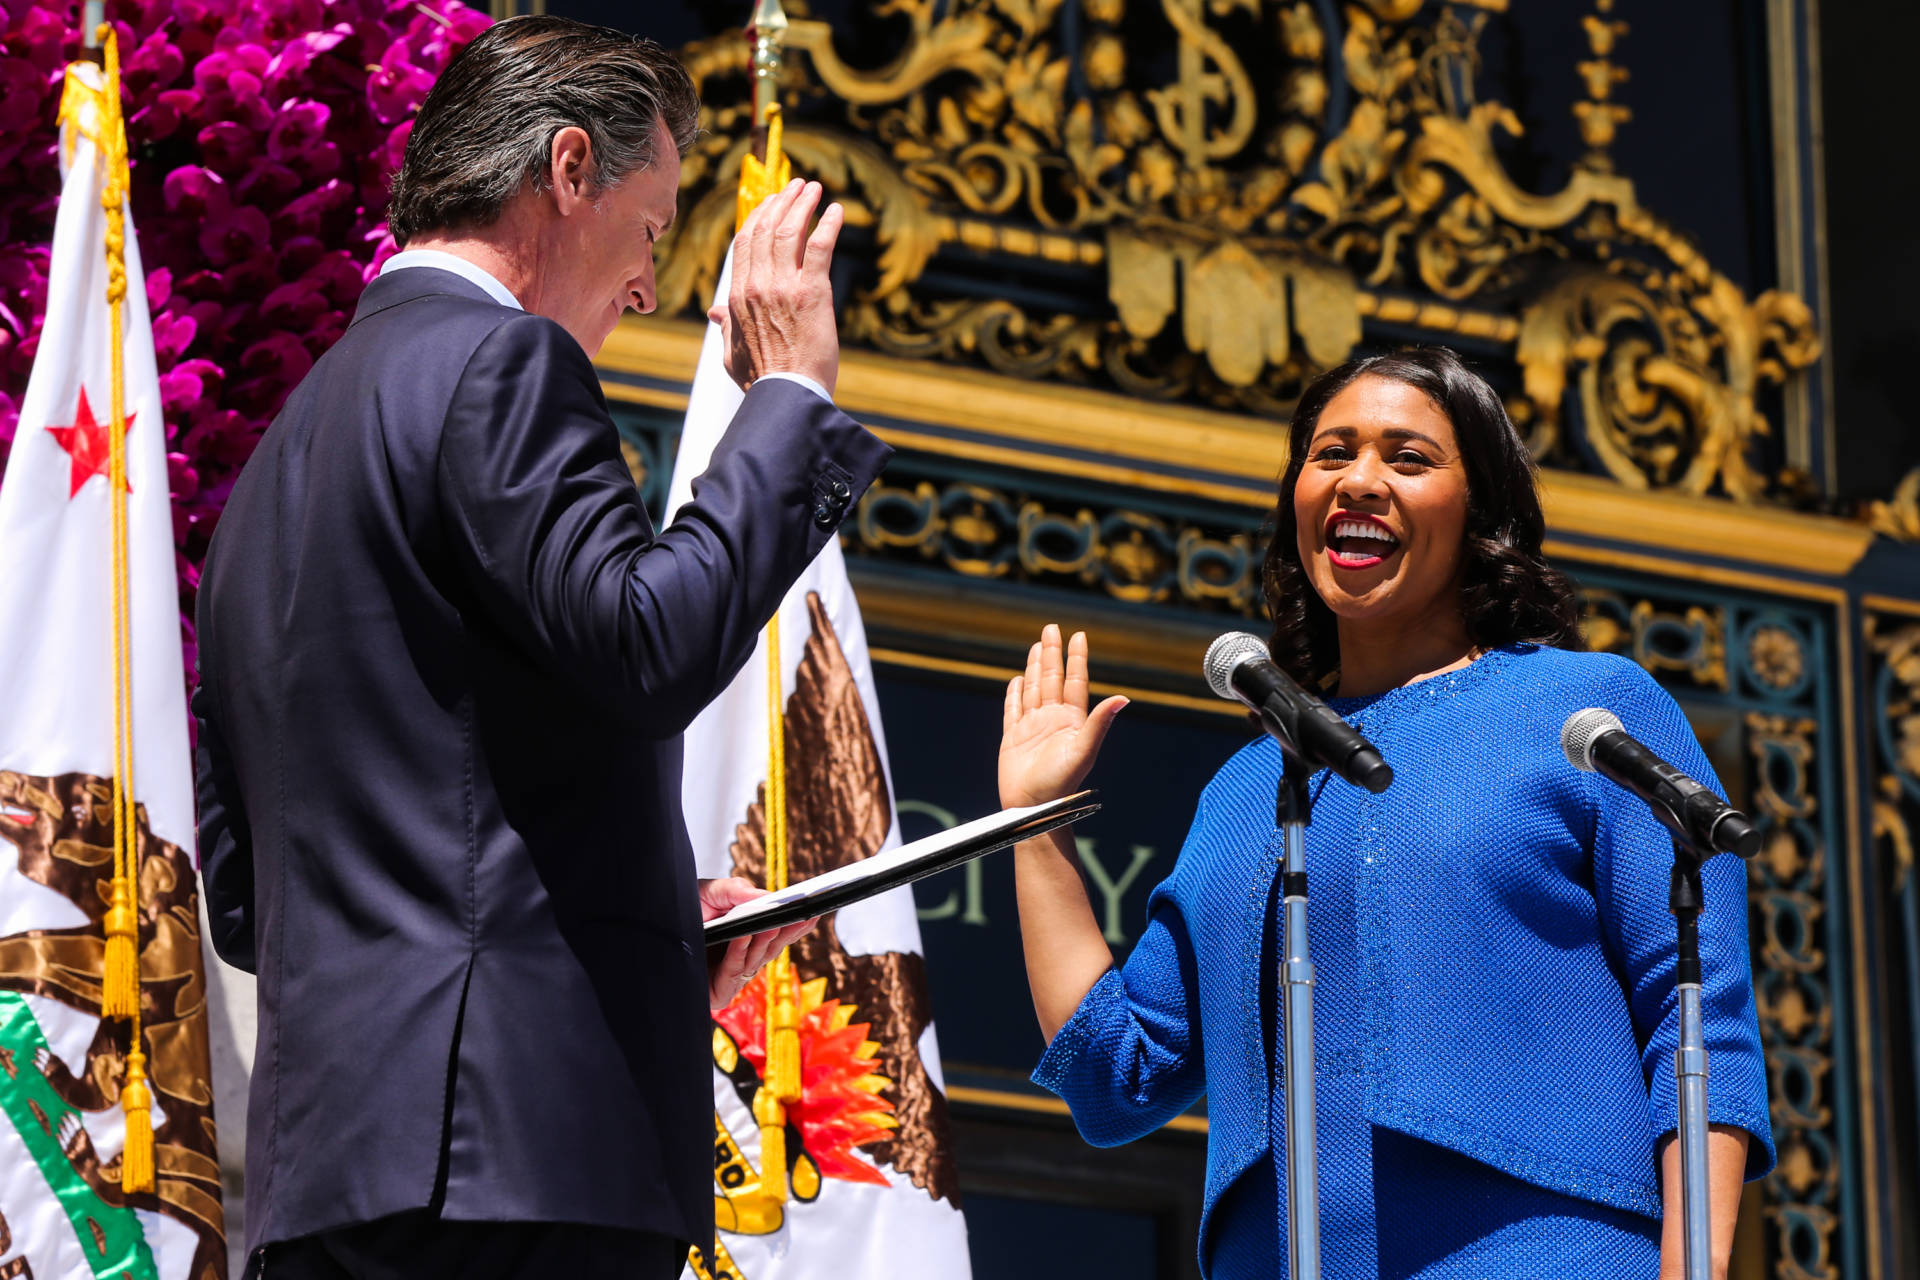 Mayor London Breed takes the oath of office from Lt. Gov. Gavin Newsom during the inauguration ceremony outside City Hall in San Francisco, California, on Wednesday, July 11, 2018. San Francisco Chronicle Pool Photo